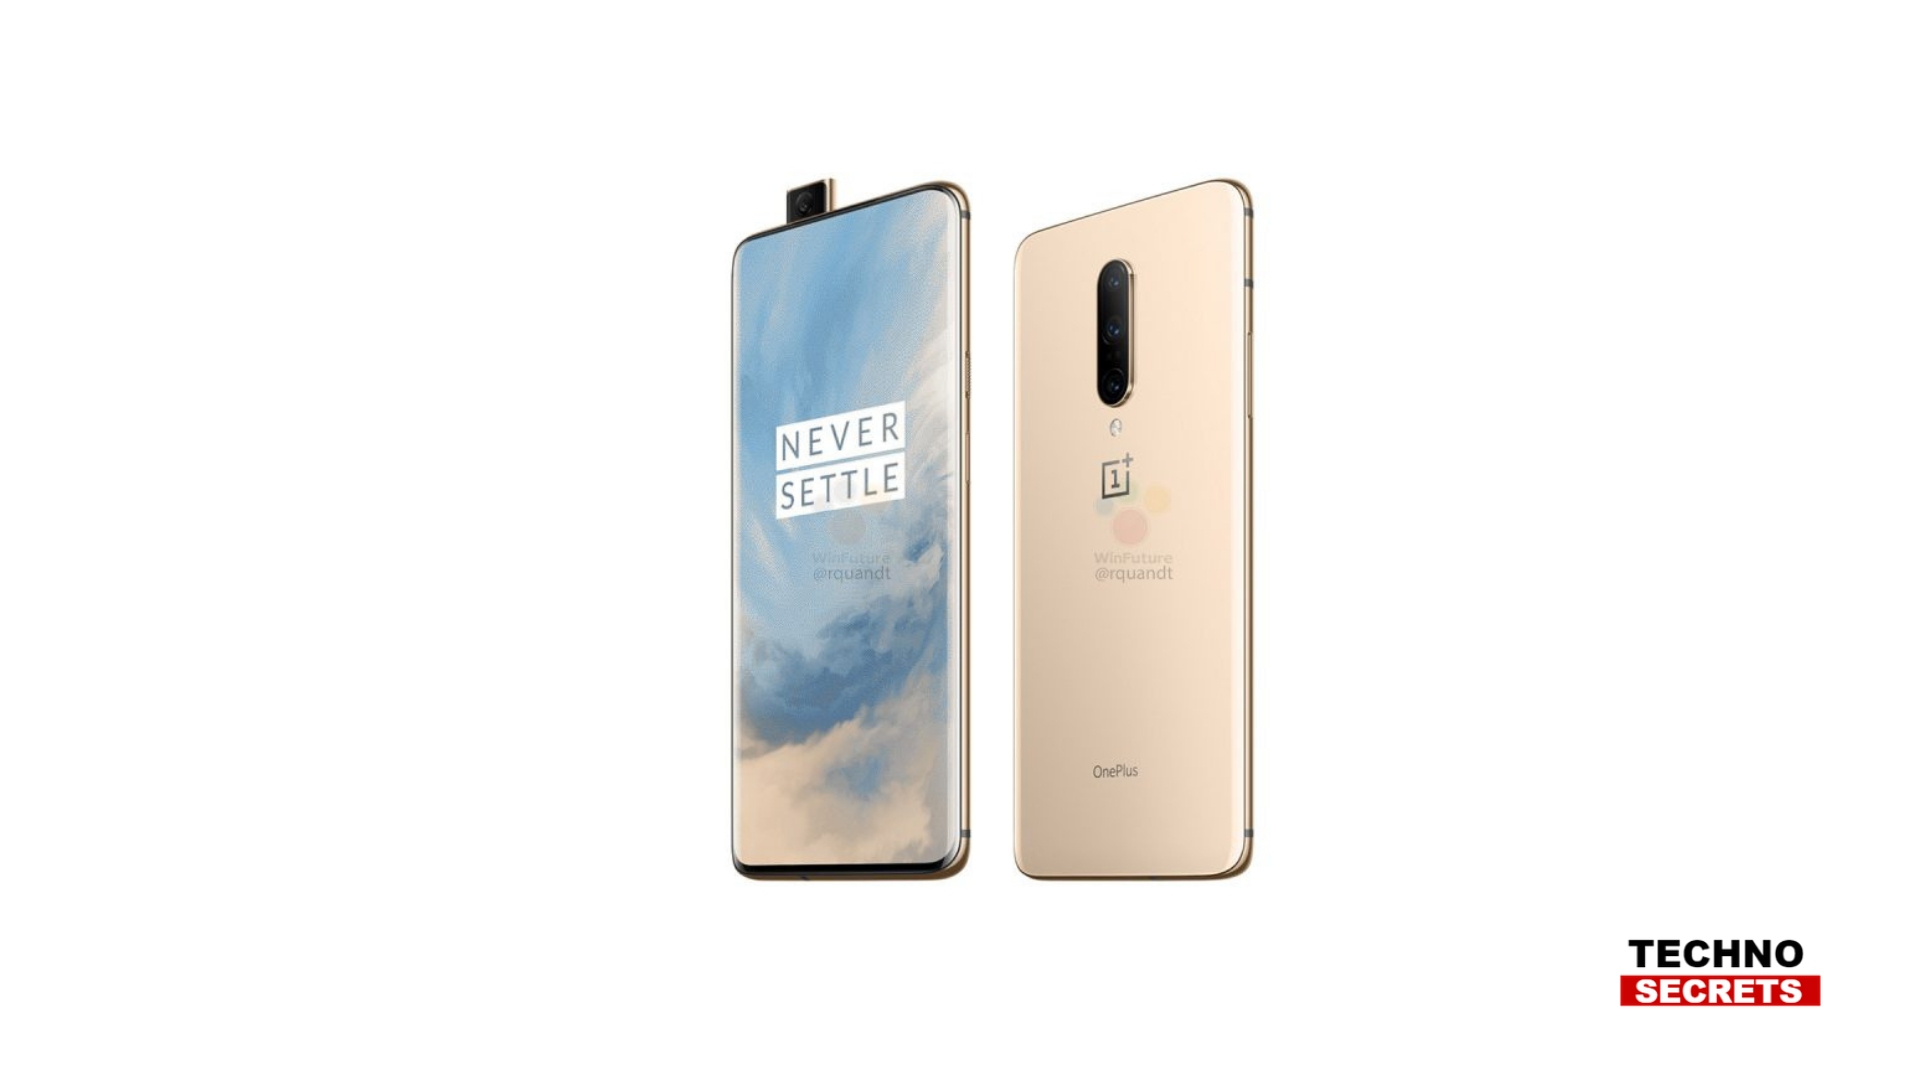 OnePlus 7 and OnePlus 7 Pro Renders Leaked Ahead of the Launch